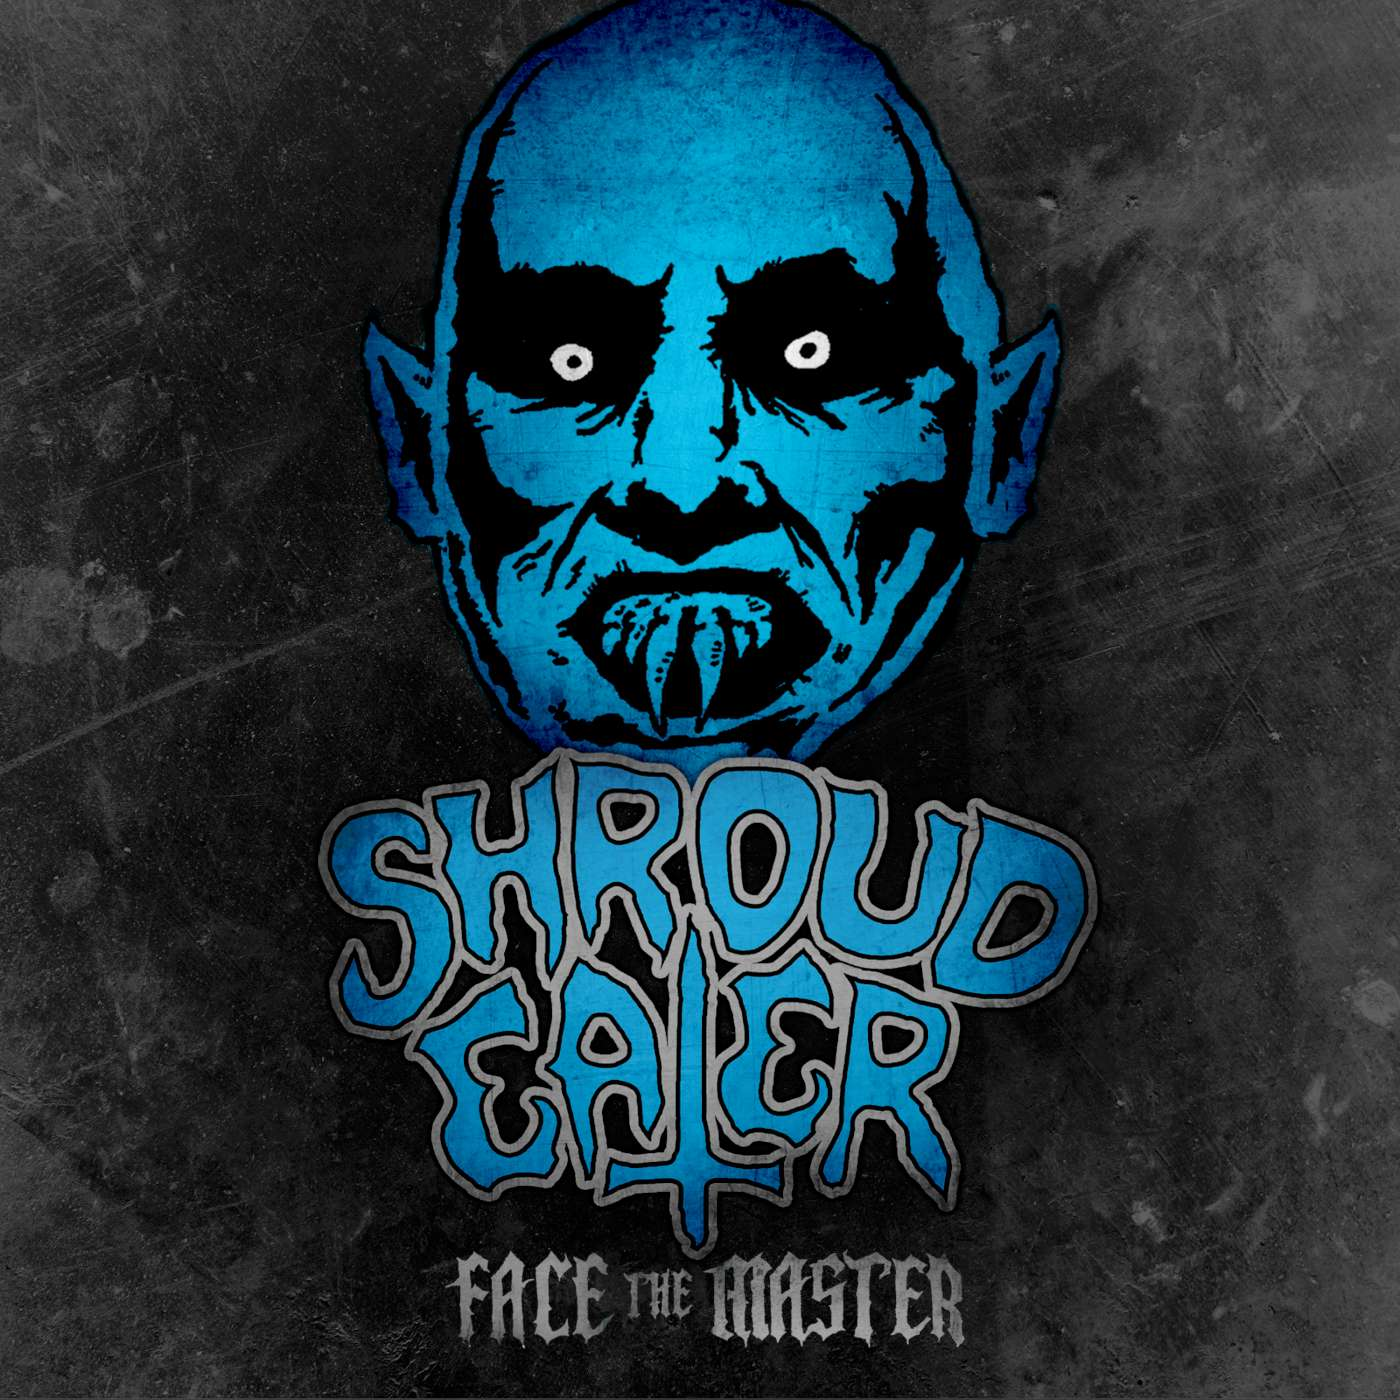 shroud eater face the master